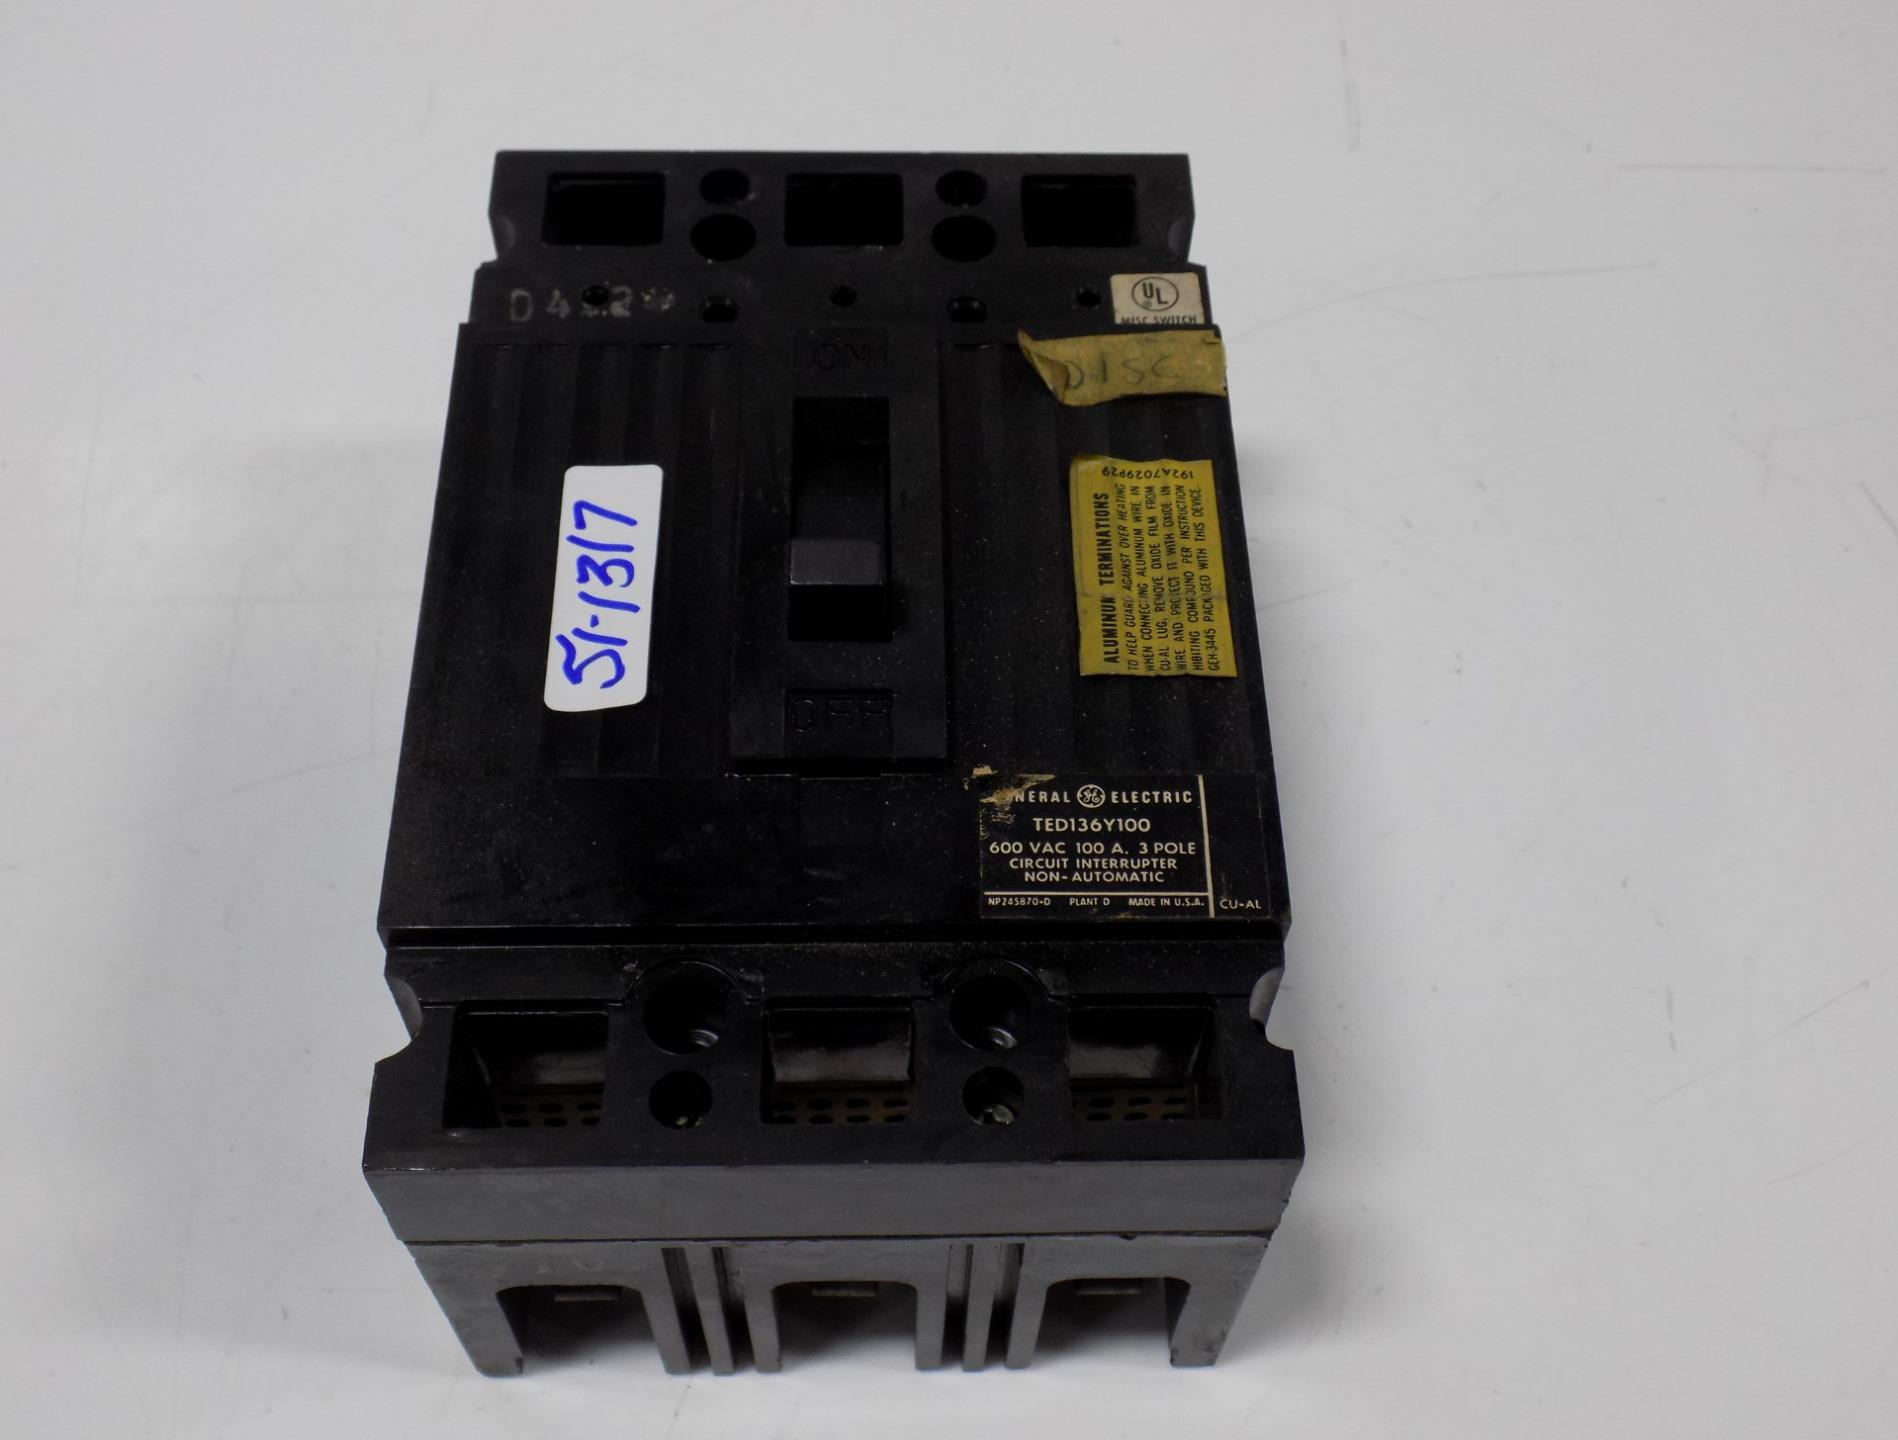 Details About General Electric 600 Vac 100 Amp 3 Pole Circuit Breaker Ted136y100